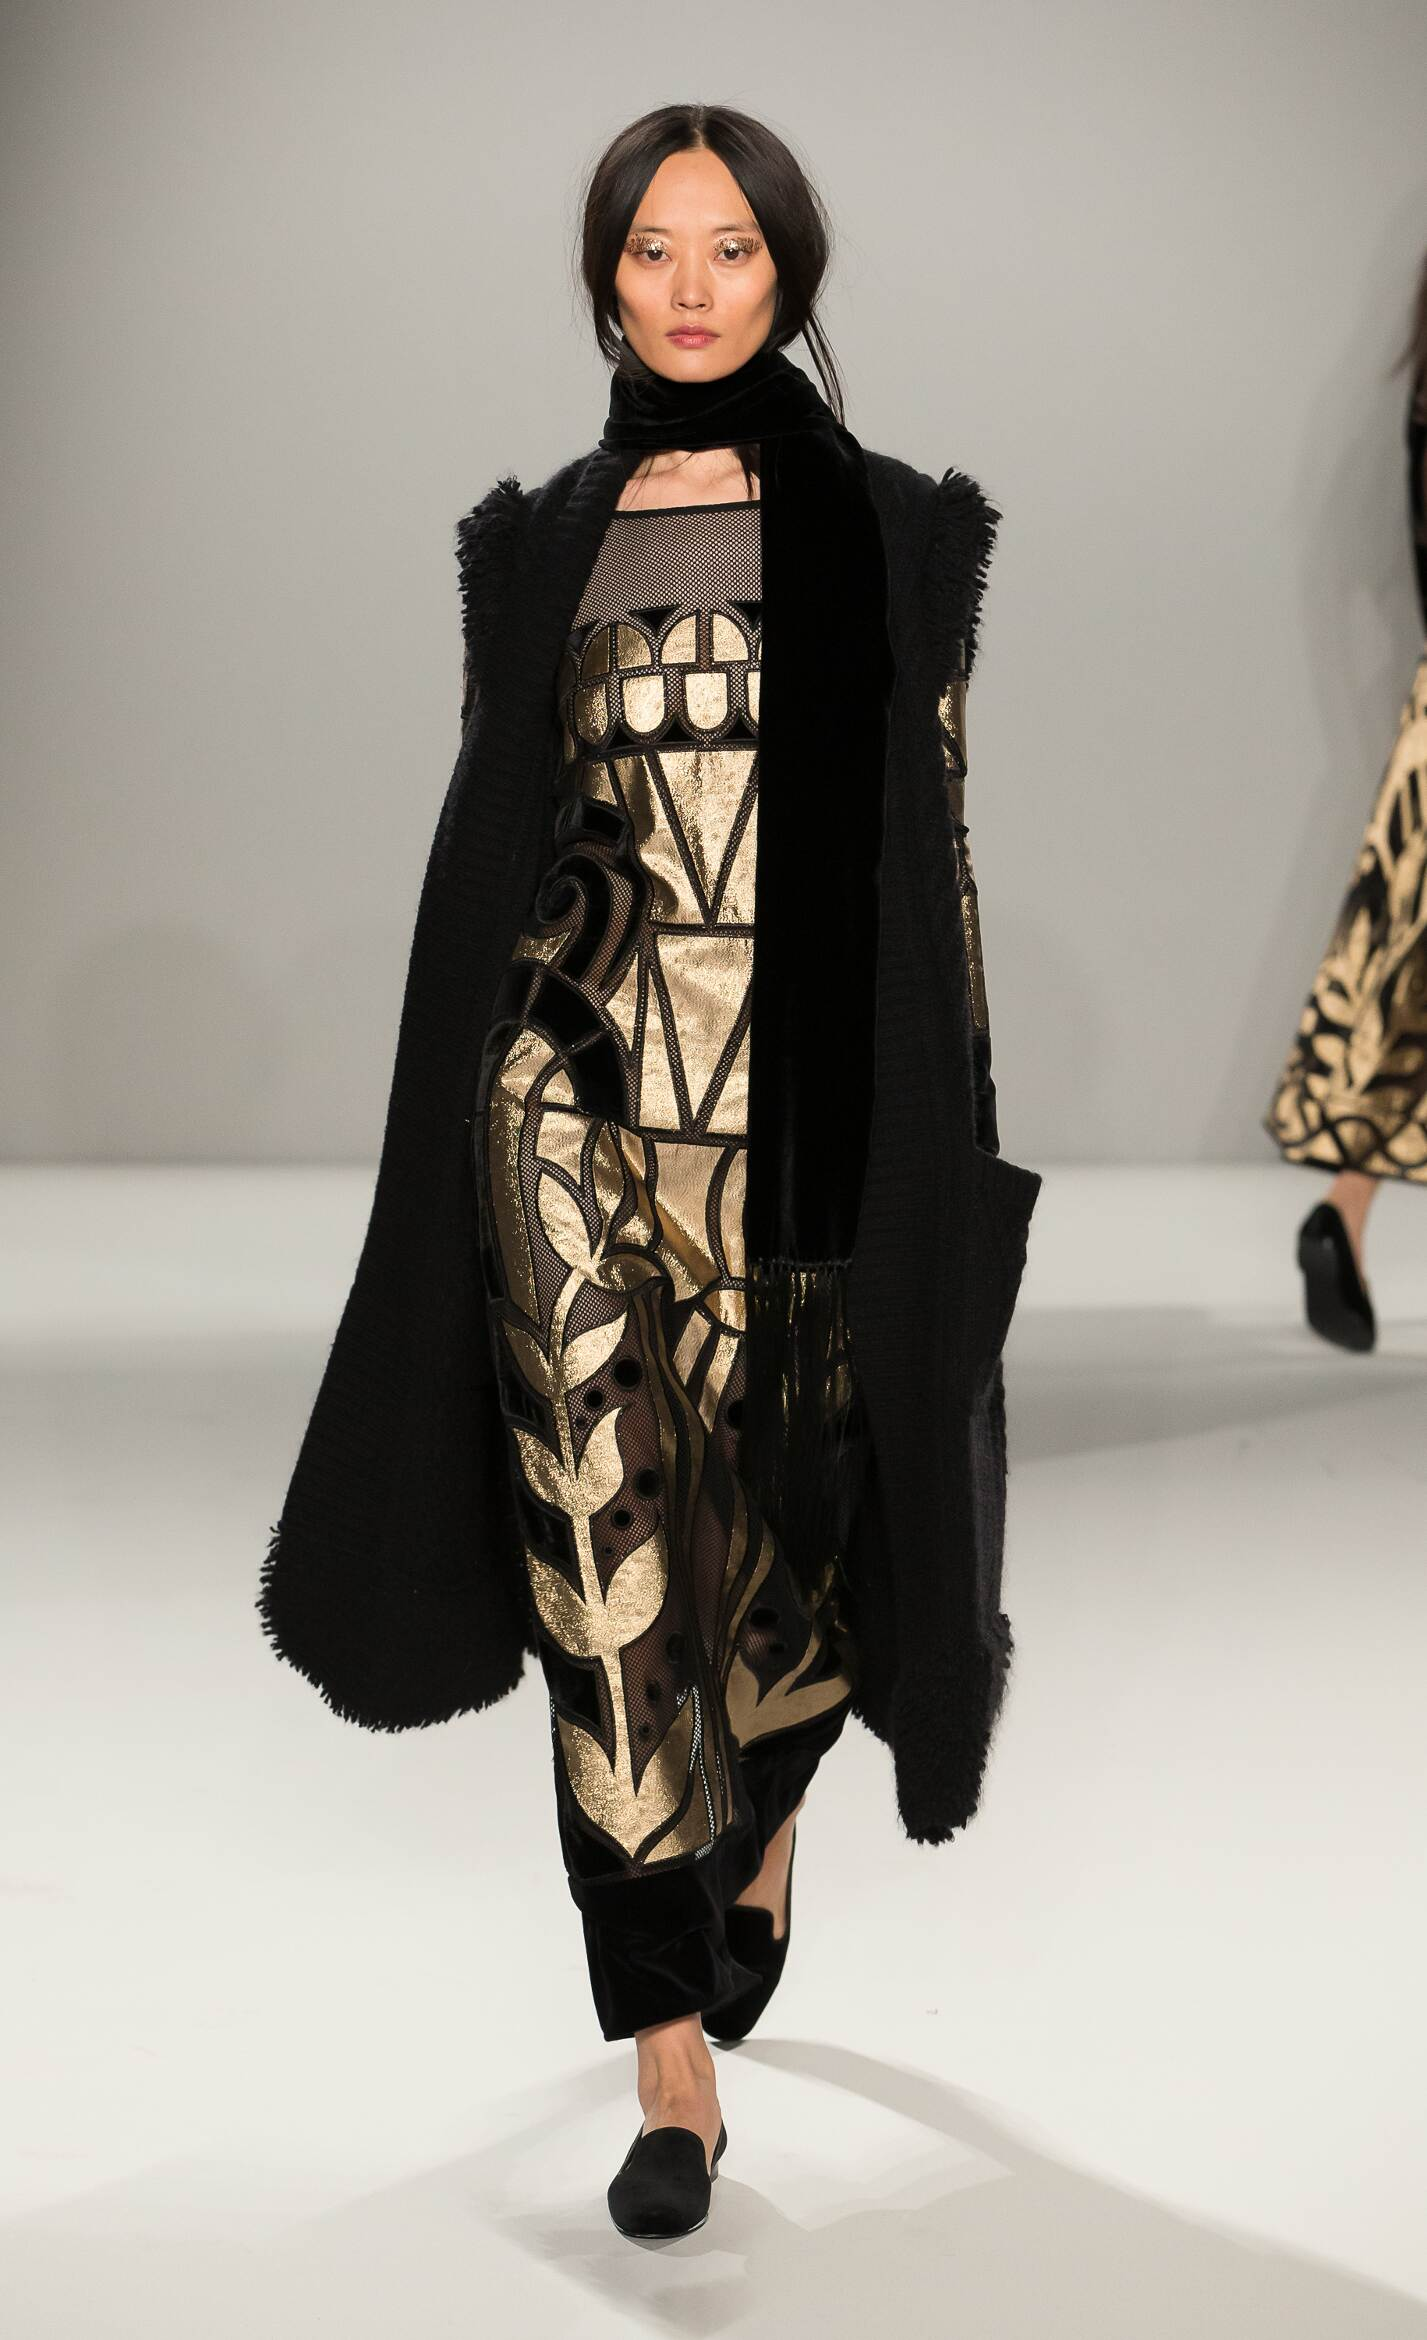 Fall Temperley London Collection Fashion Woman Model